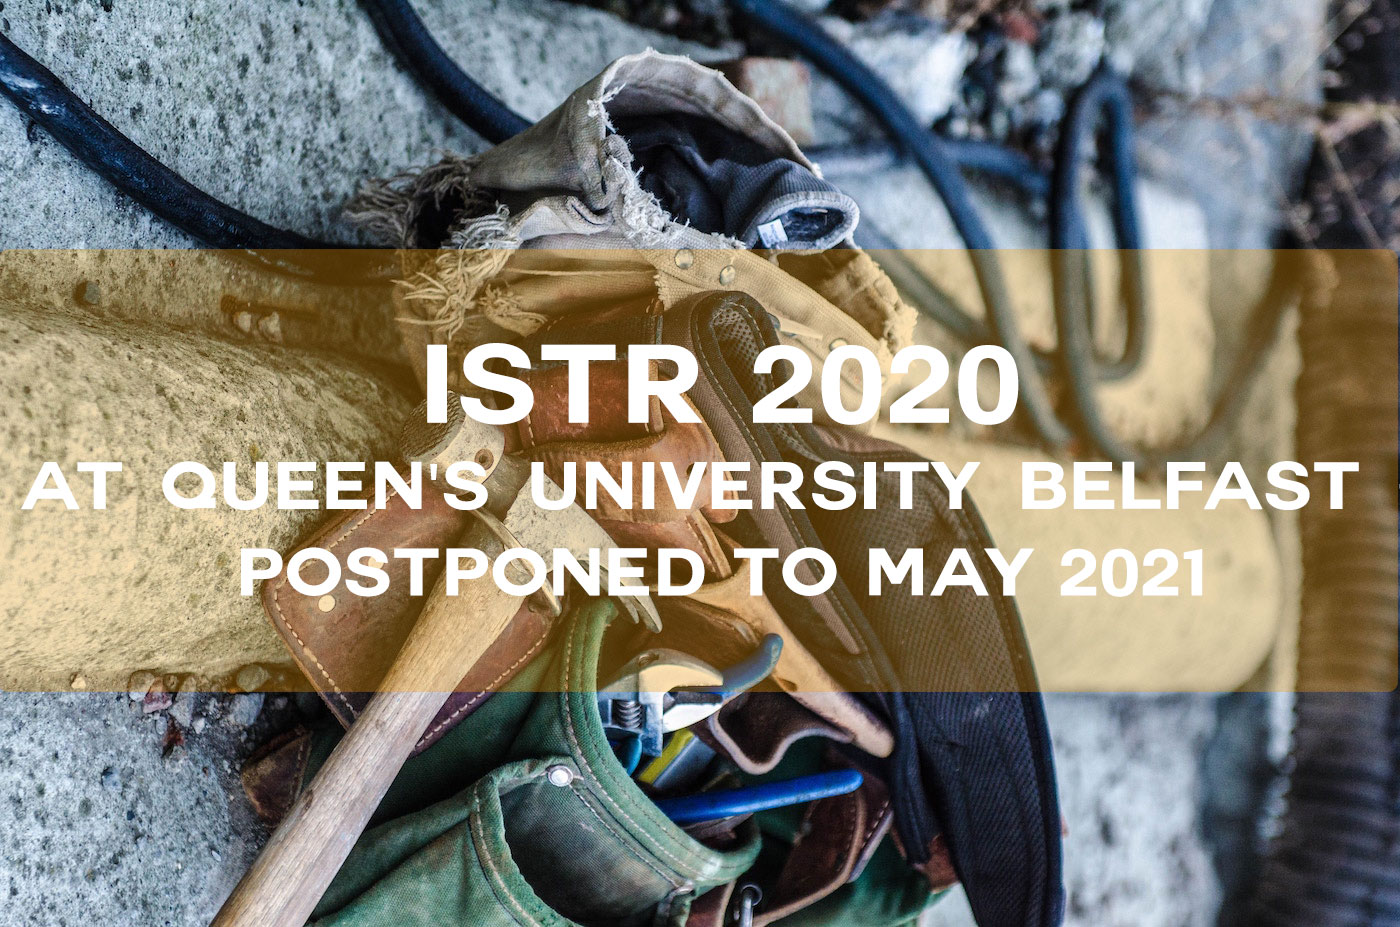 https://istr.ie/wp-content/uploads/2020/04/jesse-orrico-unsplash_ISTR2020_POSTPONED.jpg